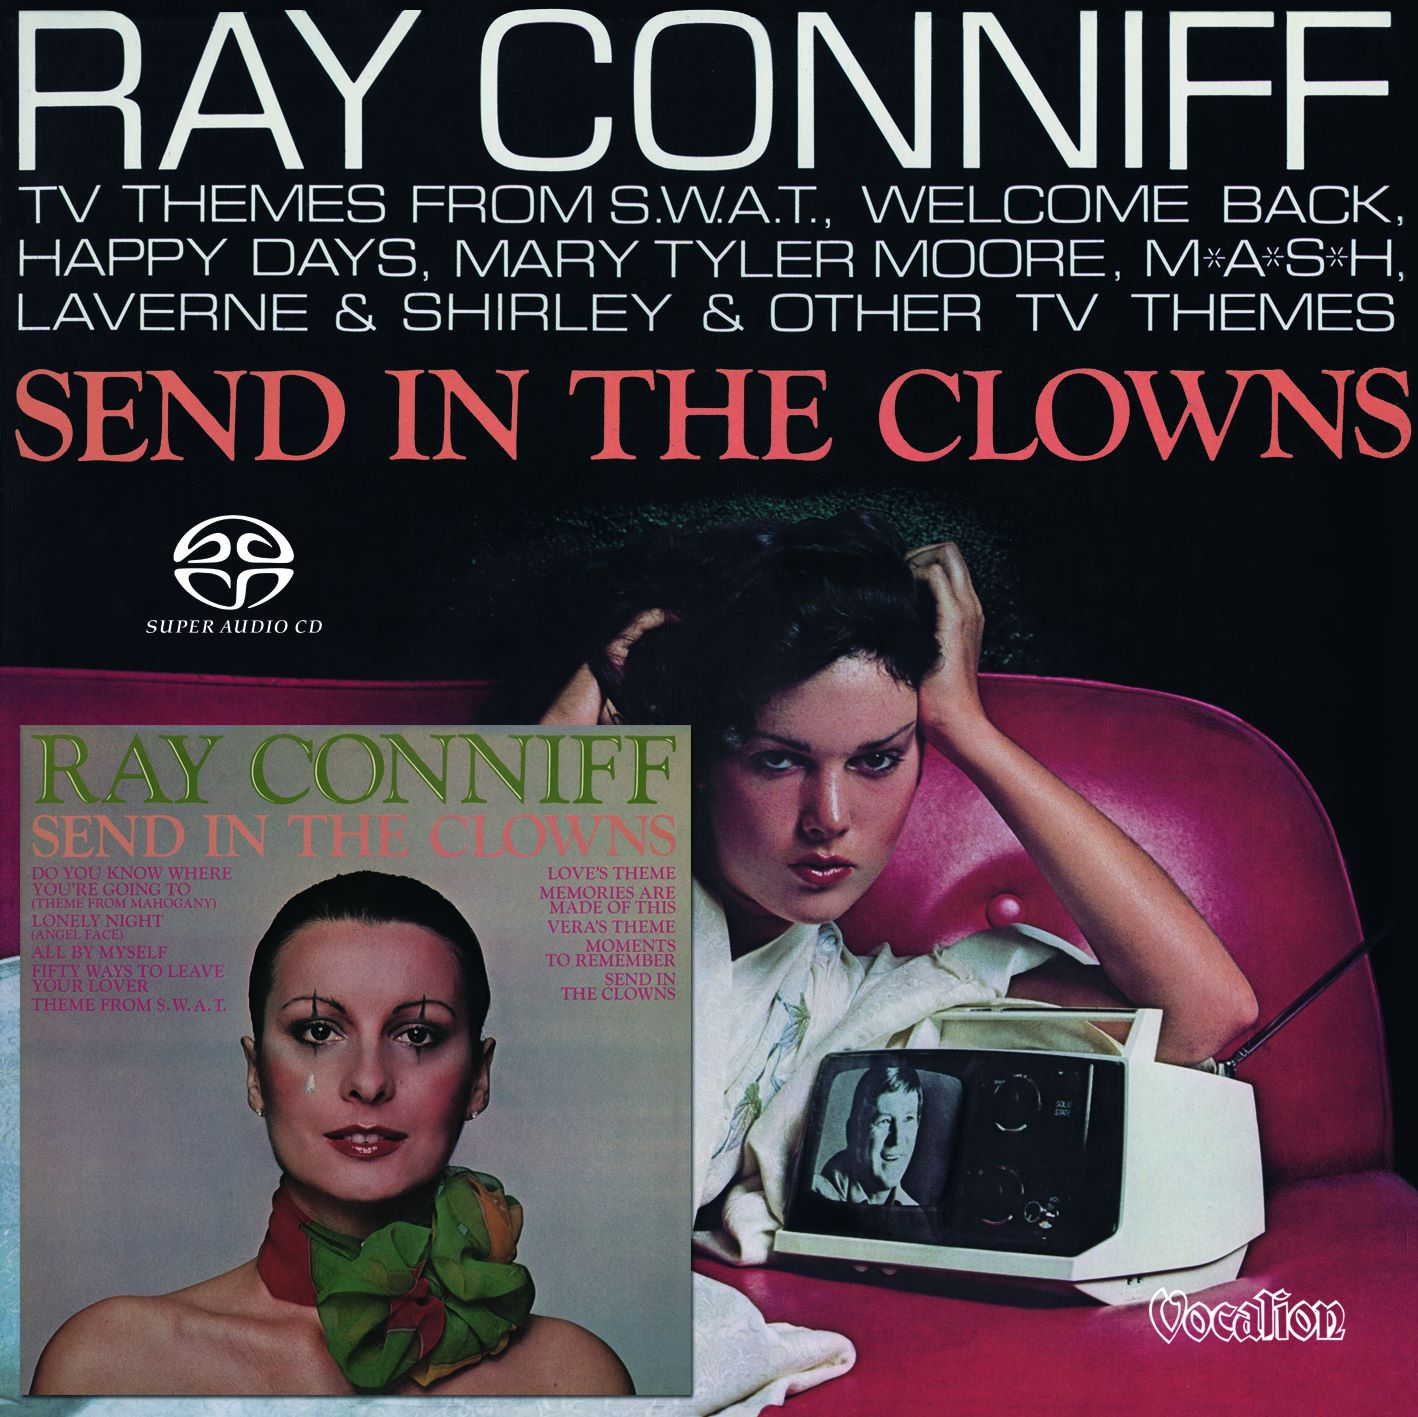 new Ray Conniff SACD: TV Themes & Send In The Clowns